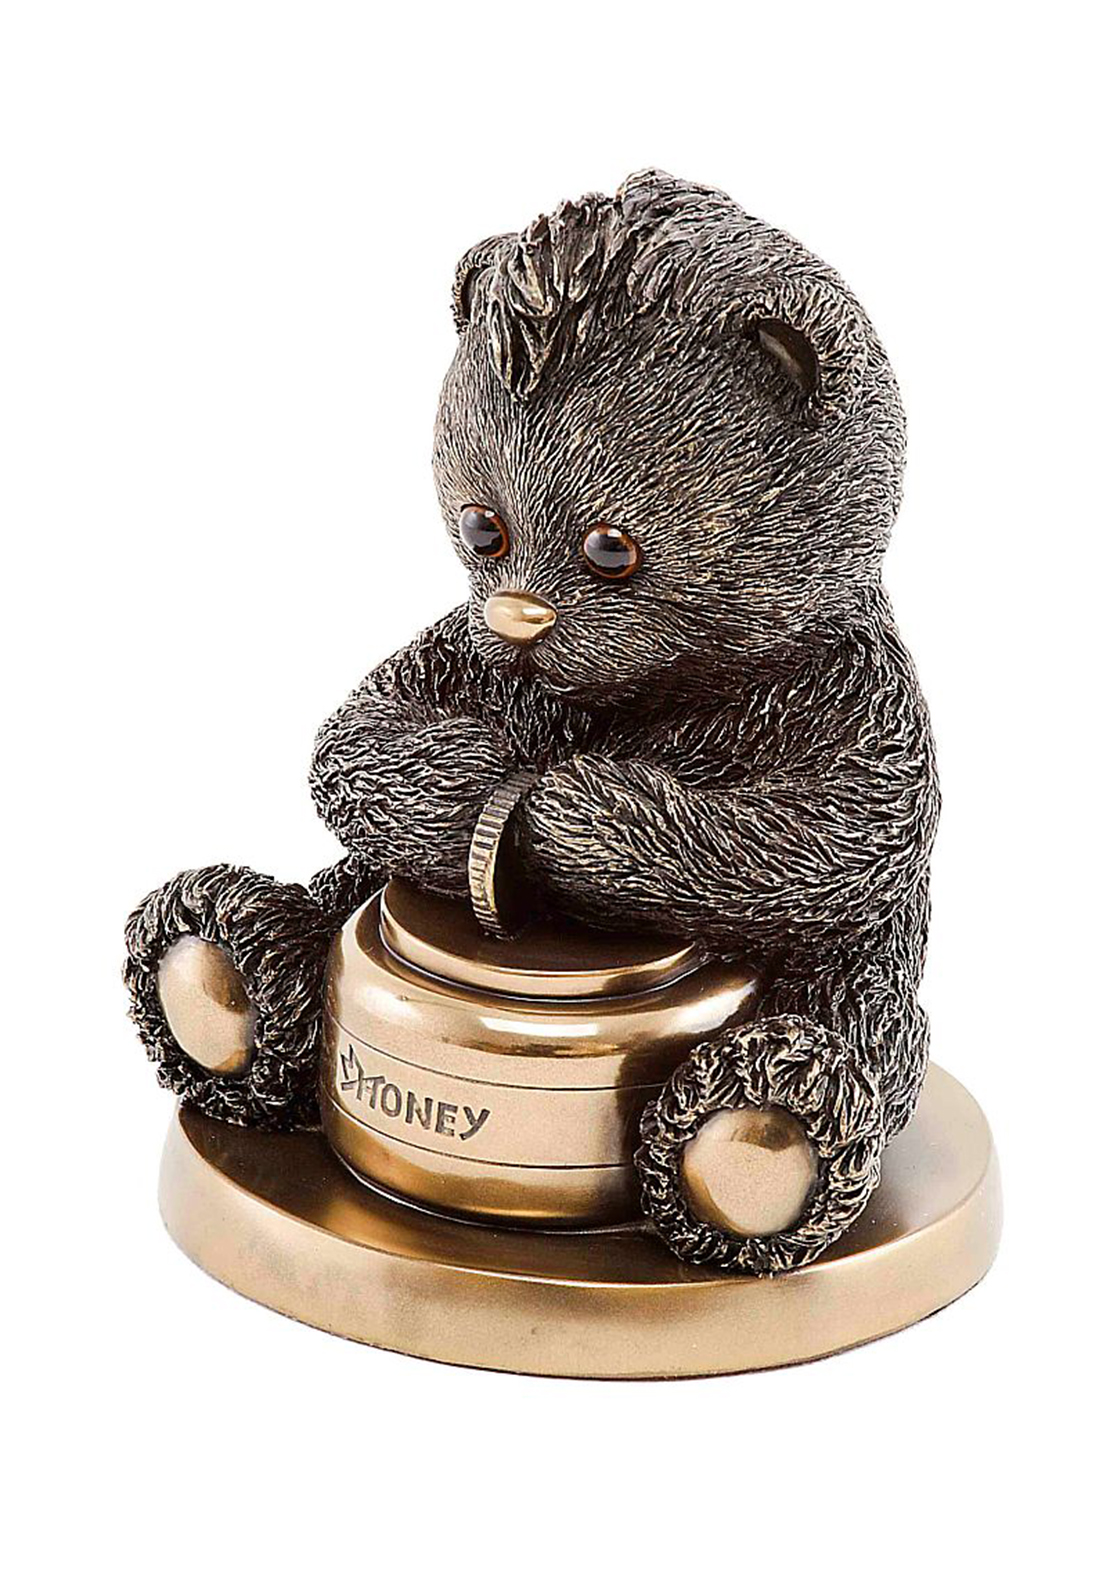 Genesis Childhood Teddy Bear Bank Ornament